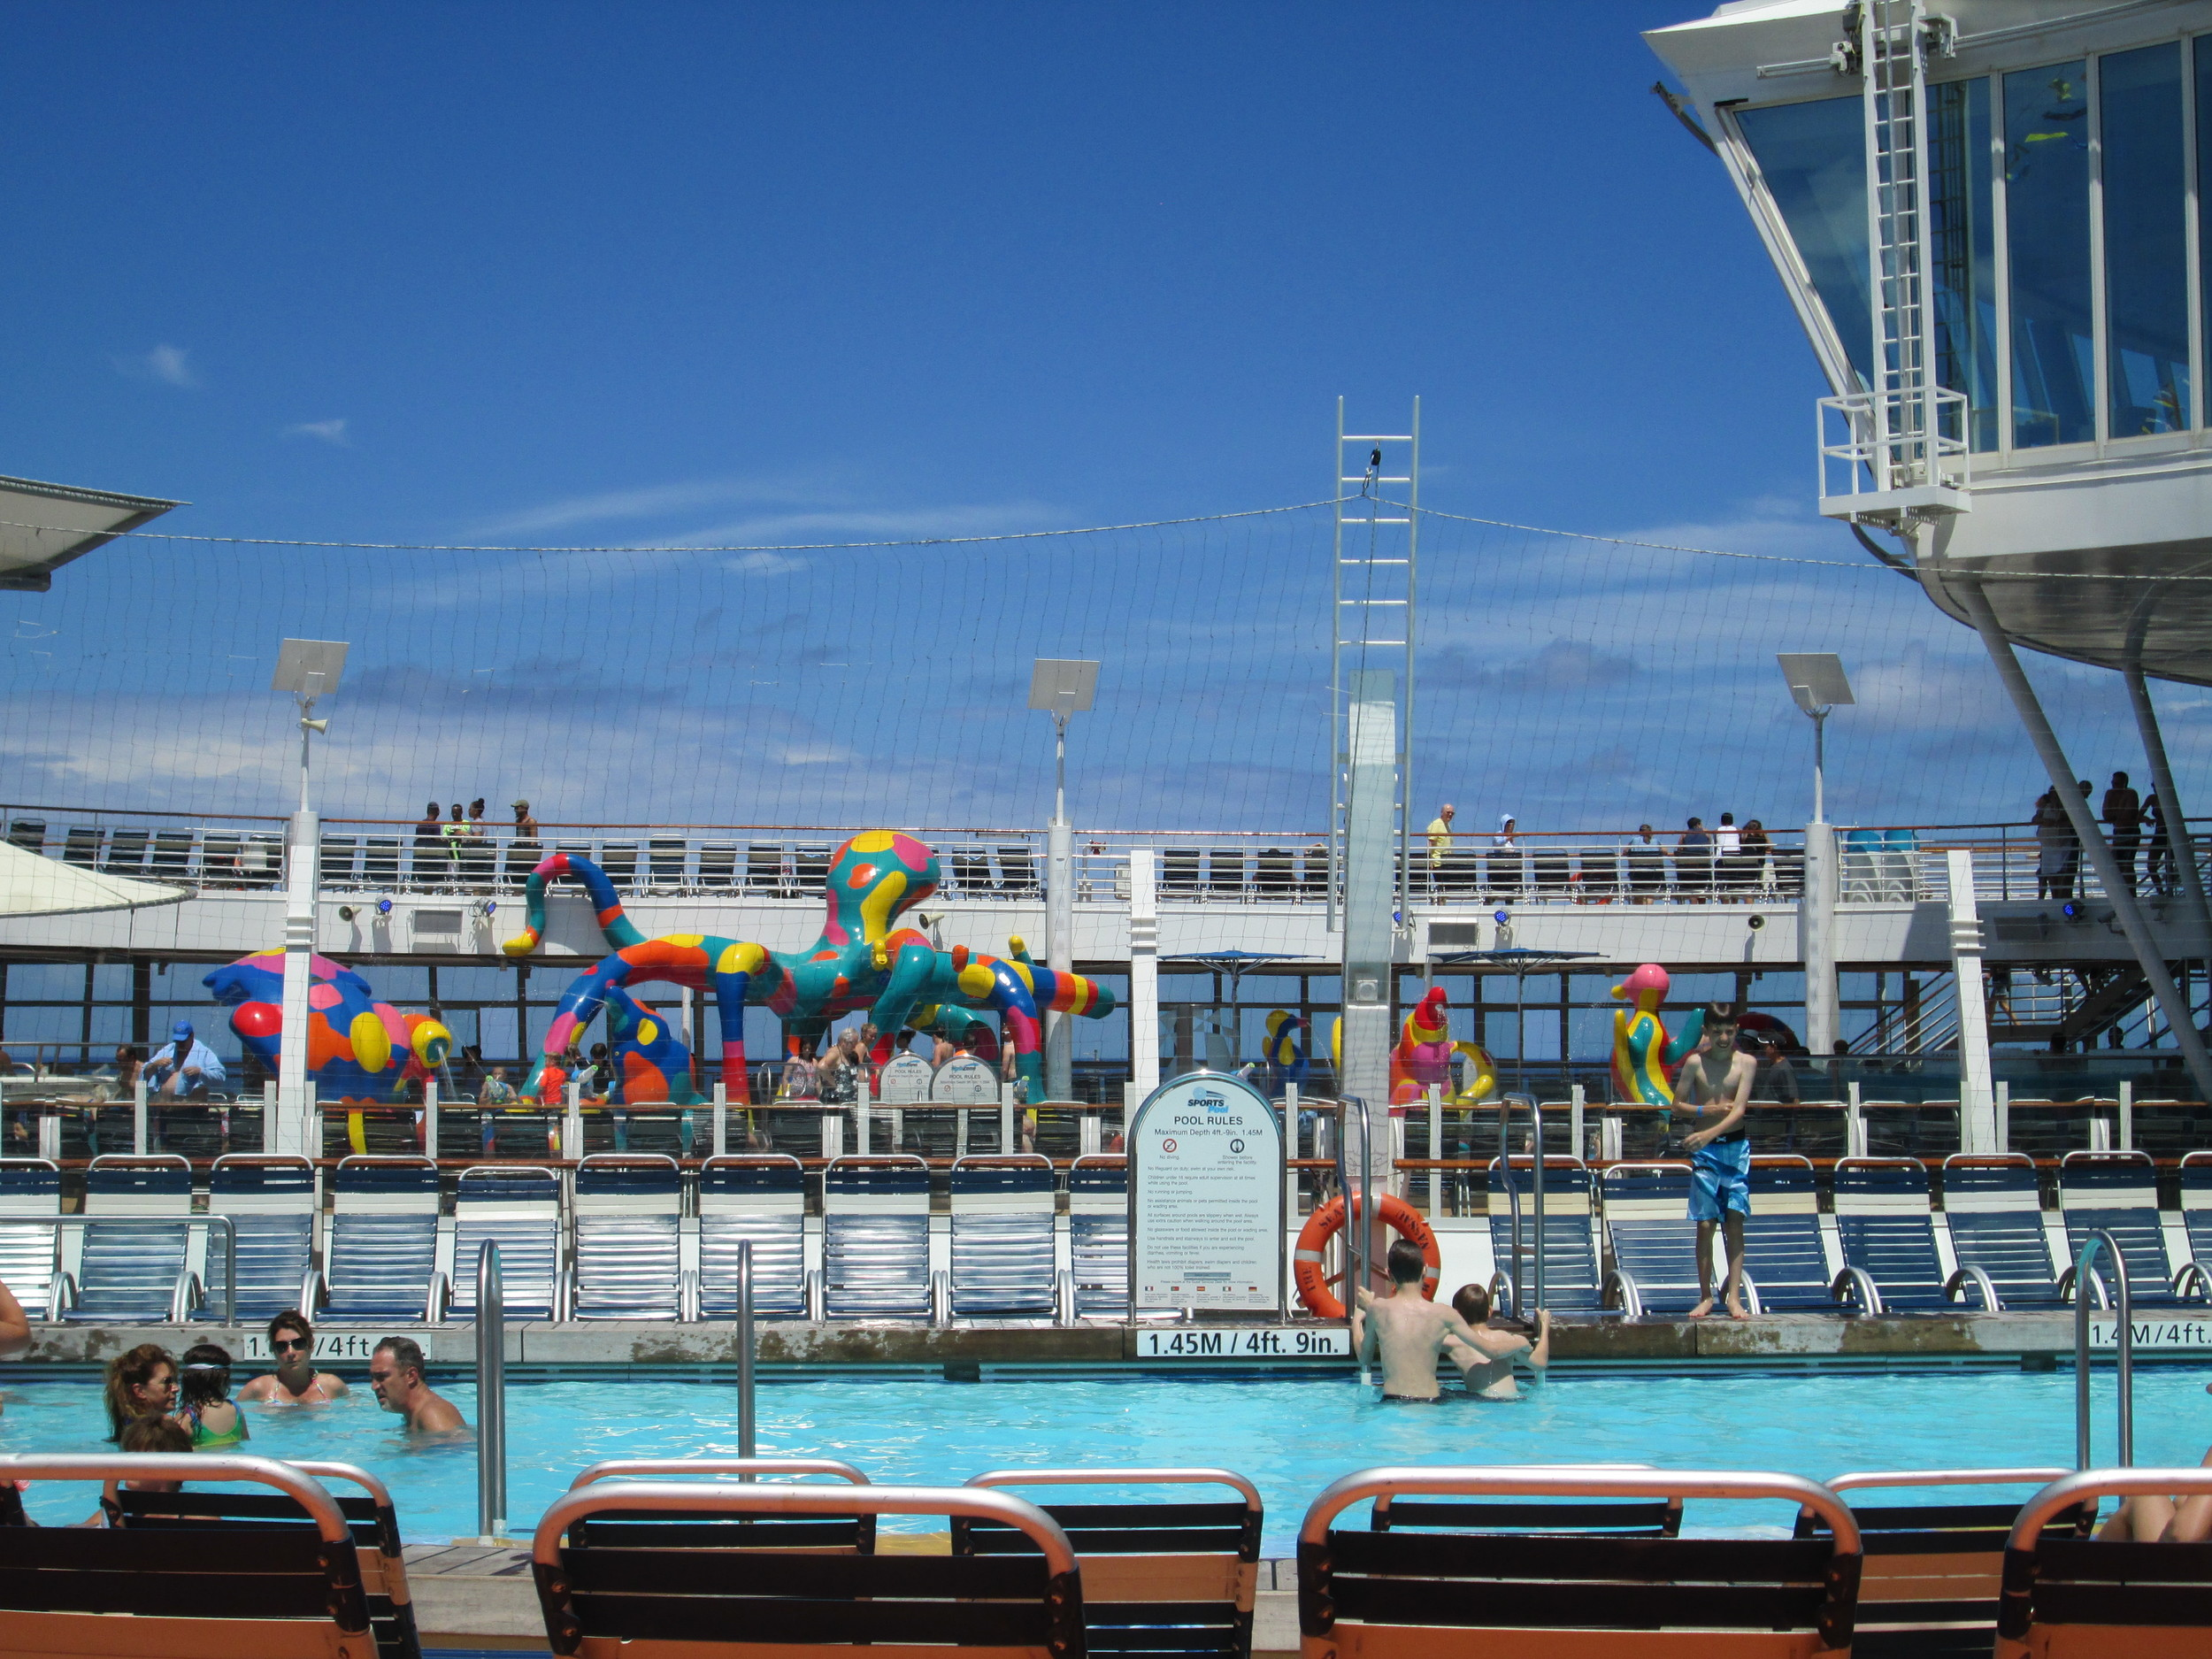 There are multiple pools on board...go exploring and find the one you like best!